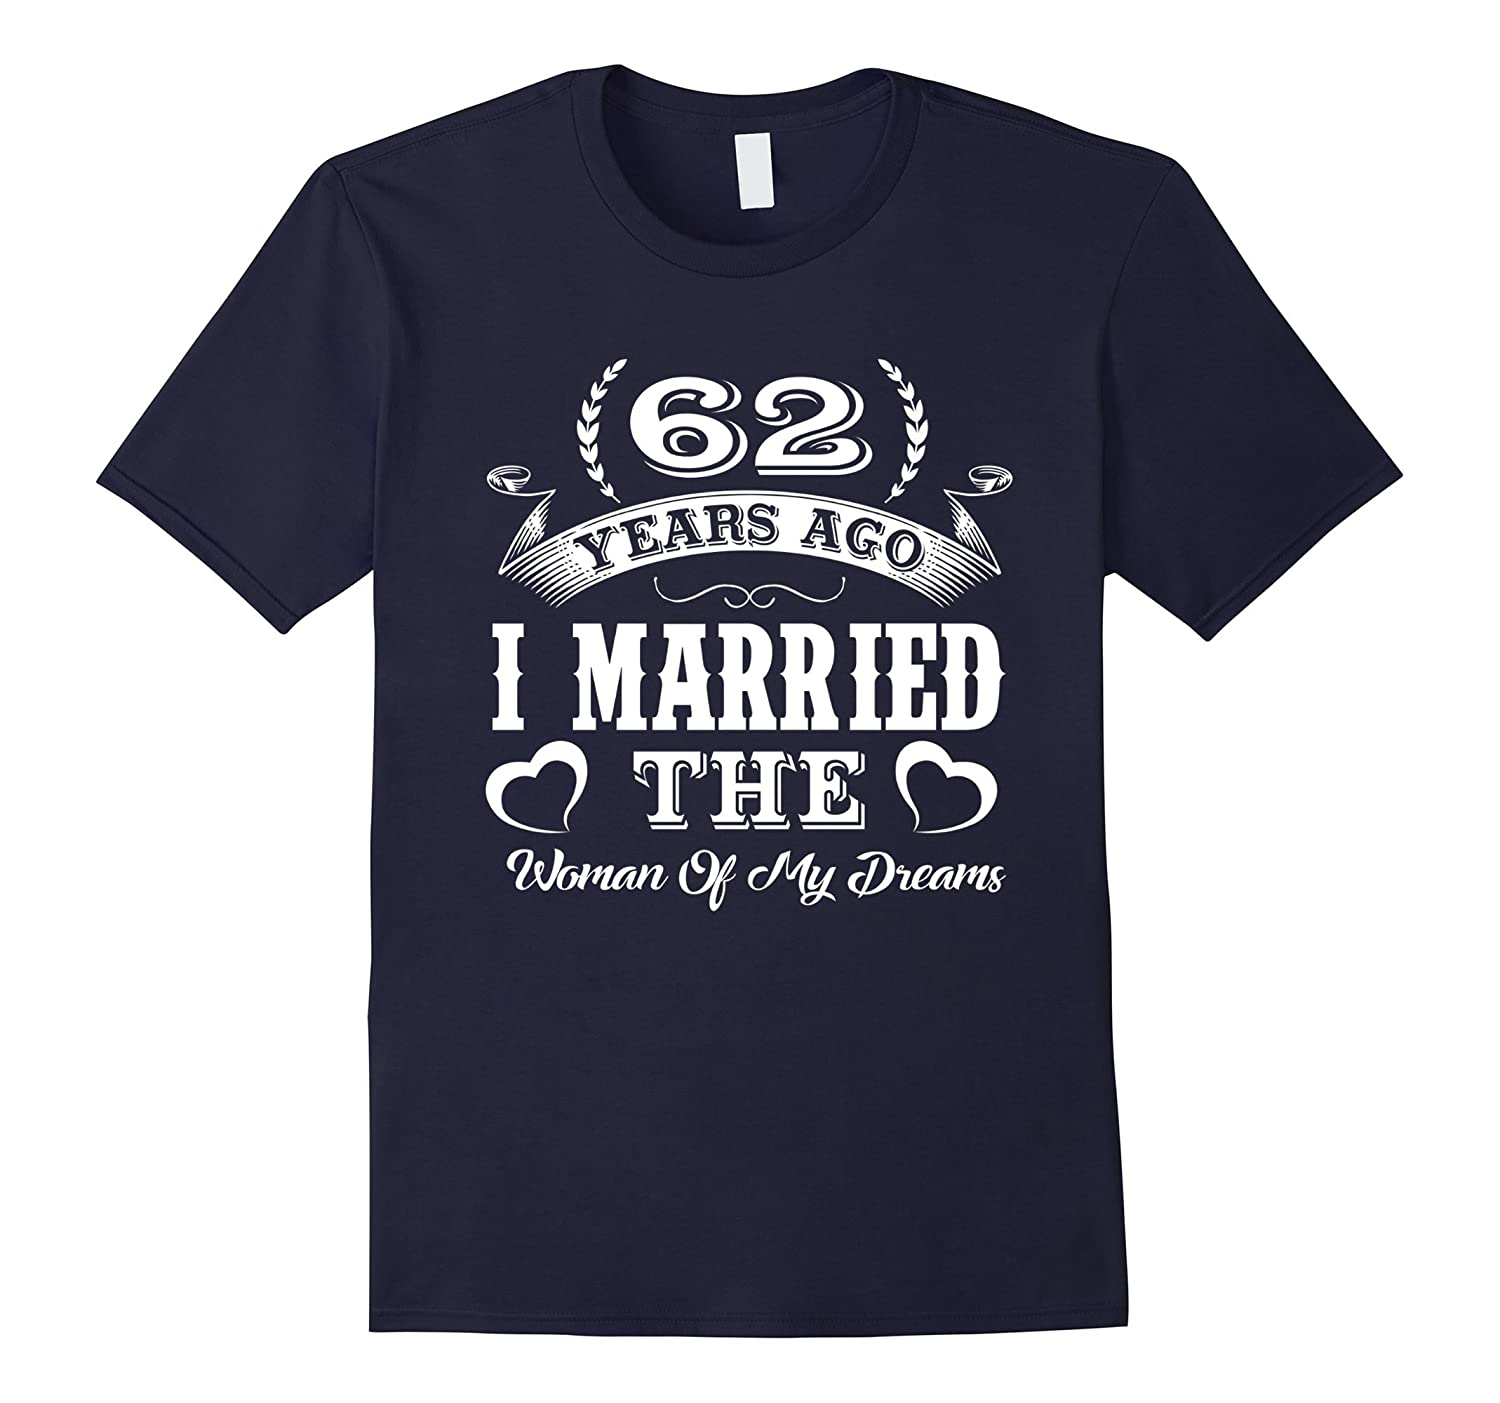 62nd Wedding Anniversary Gifts. T shirts For Couples.-Art